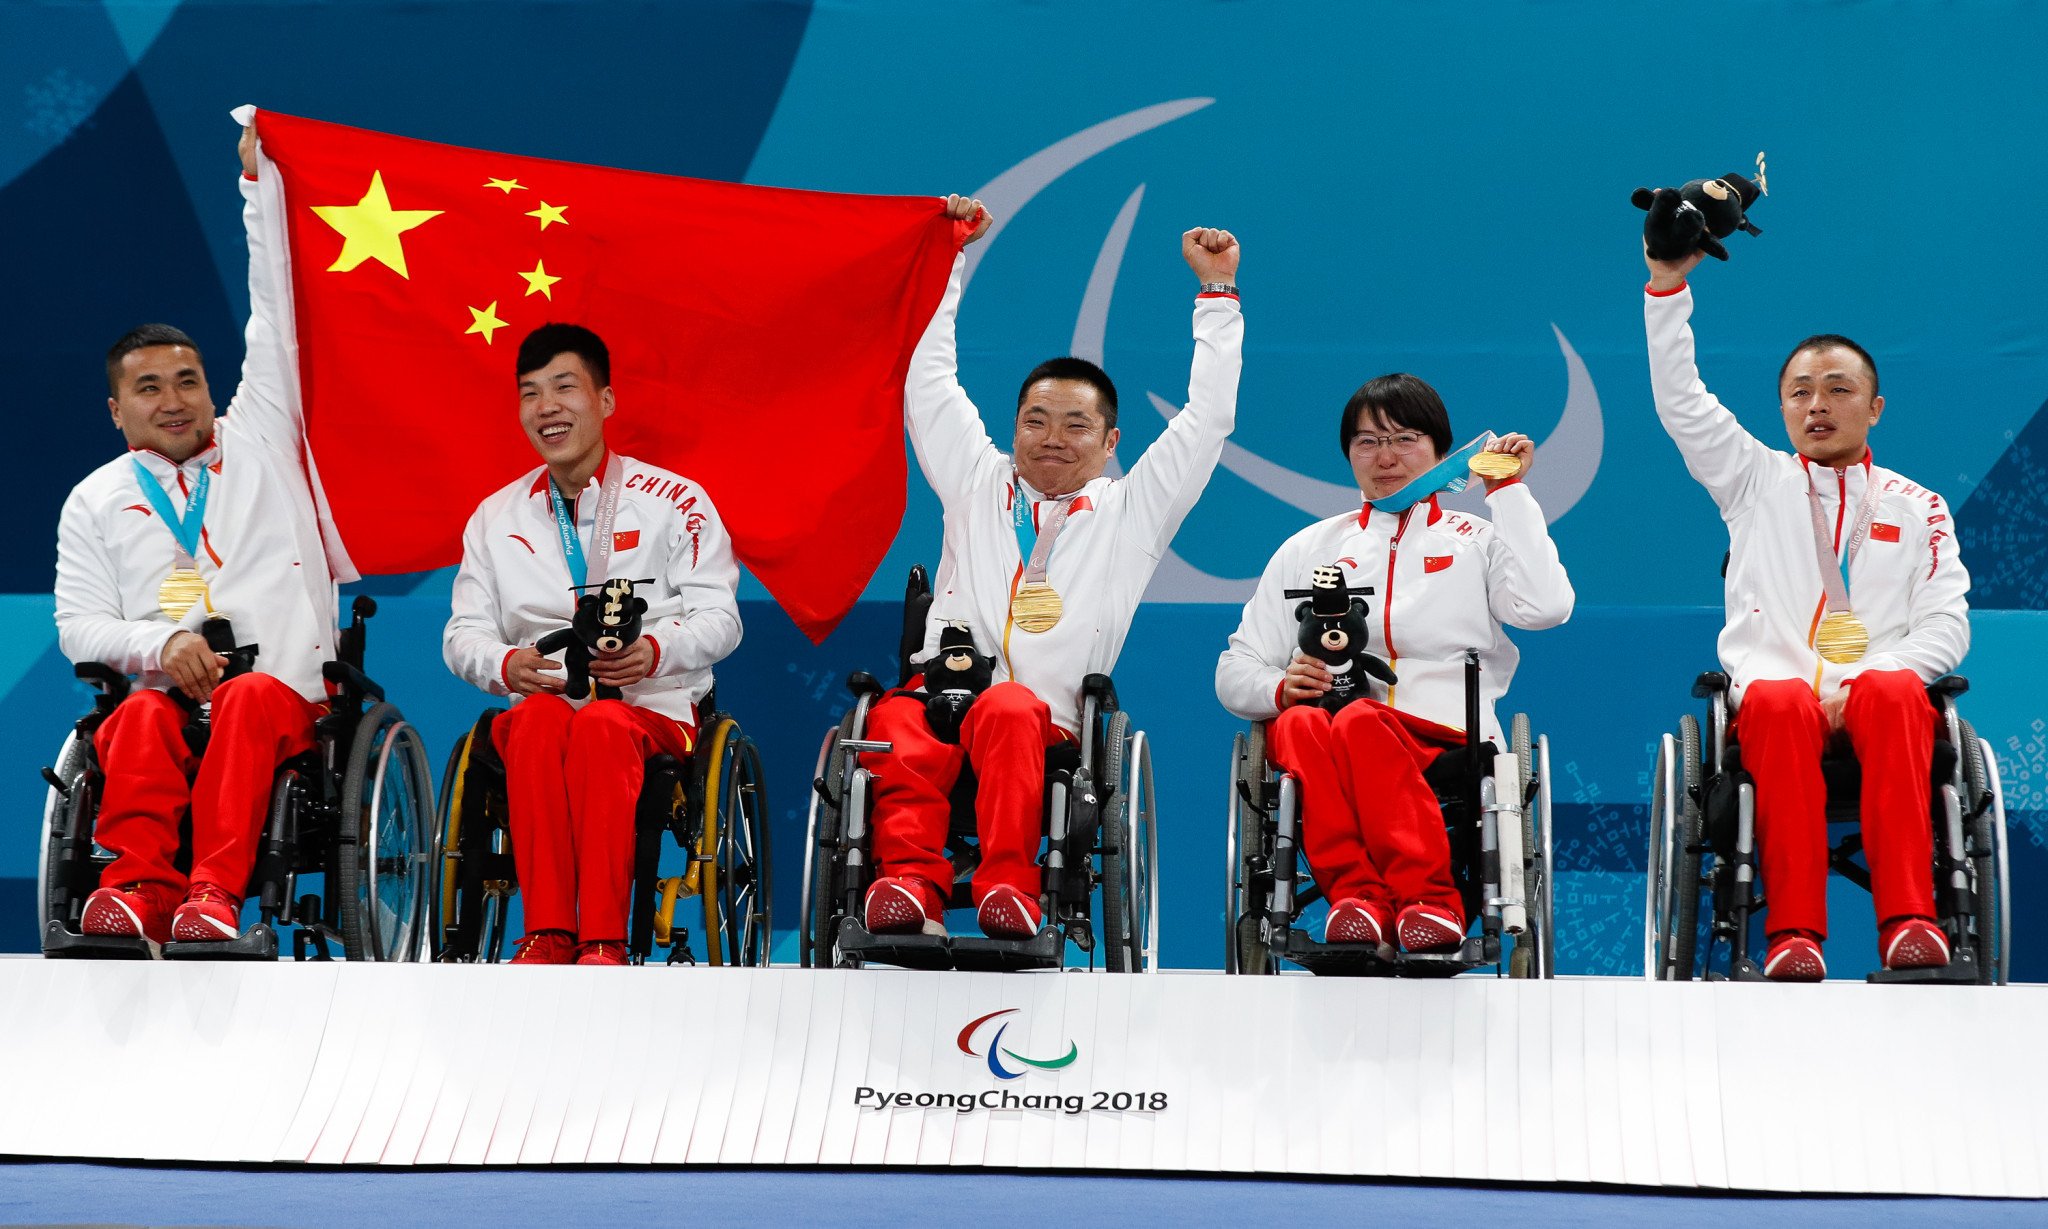 World Curling Federation President praises Chinese wheelchair curling team after IPC award